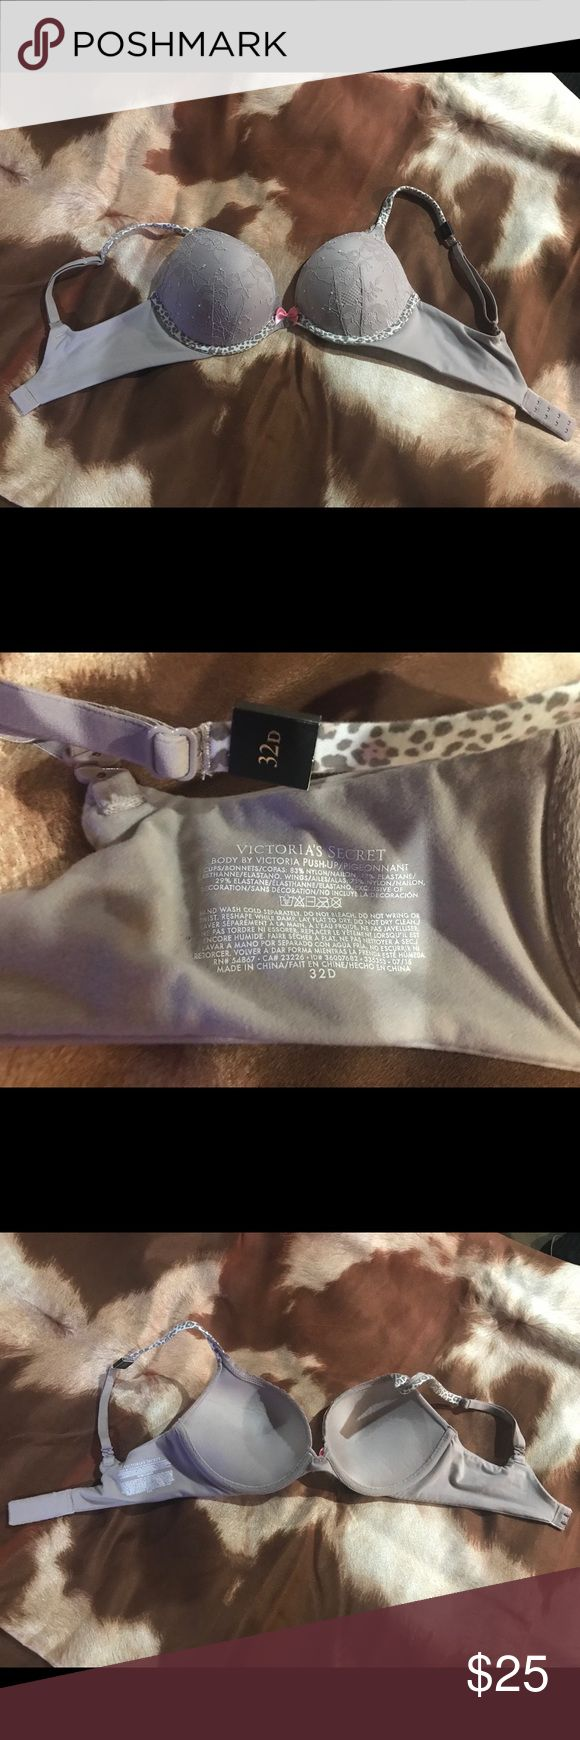 Victoria's Secret Push up Bra Brand new with tag Victoria's Secret Bra. Push up padding. Lace with animal print touches. Small pink bow in front. Victoria's Secret Intimates & Sleepwear Bras